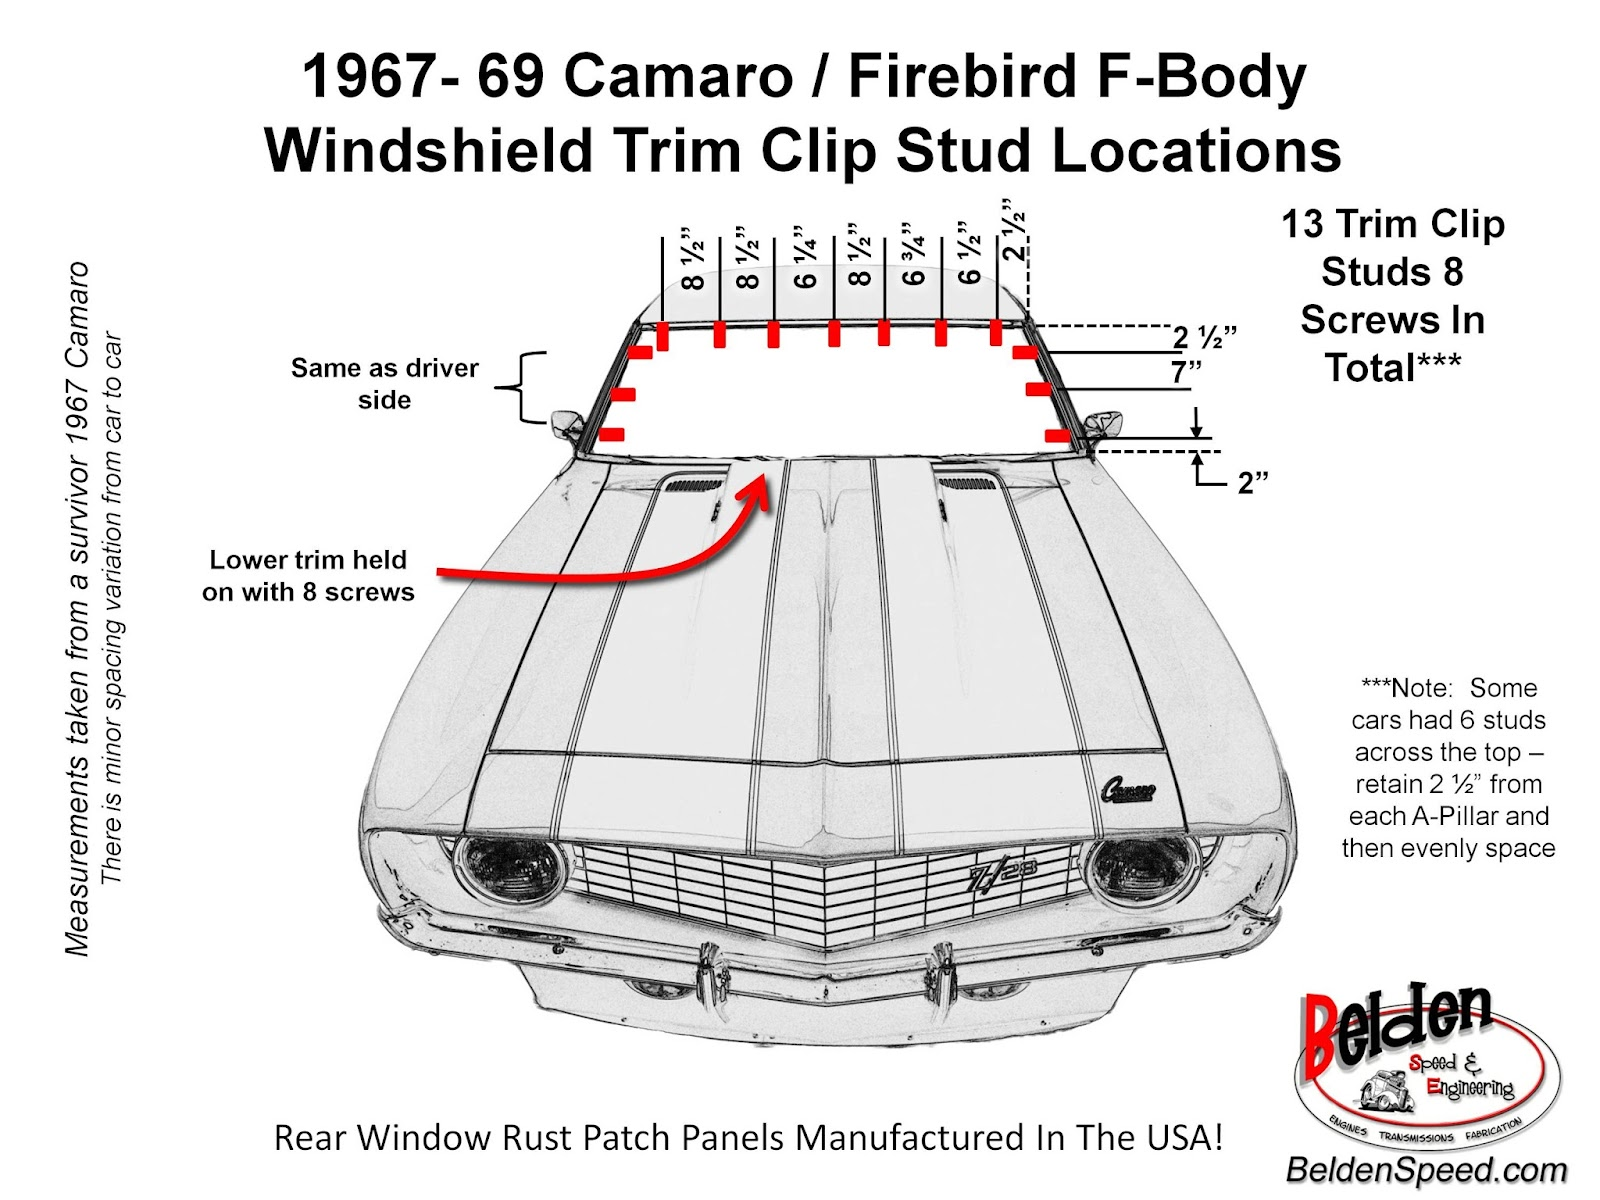 1967 1969 Camaro Firebird F Body Windshield Trim Clip Stud Locations 1968 Plymouth Road Runner Wiring Diagram